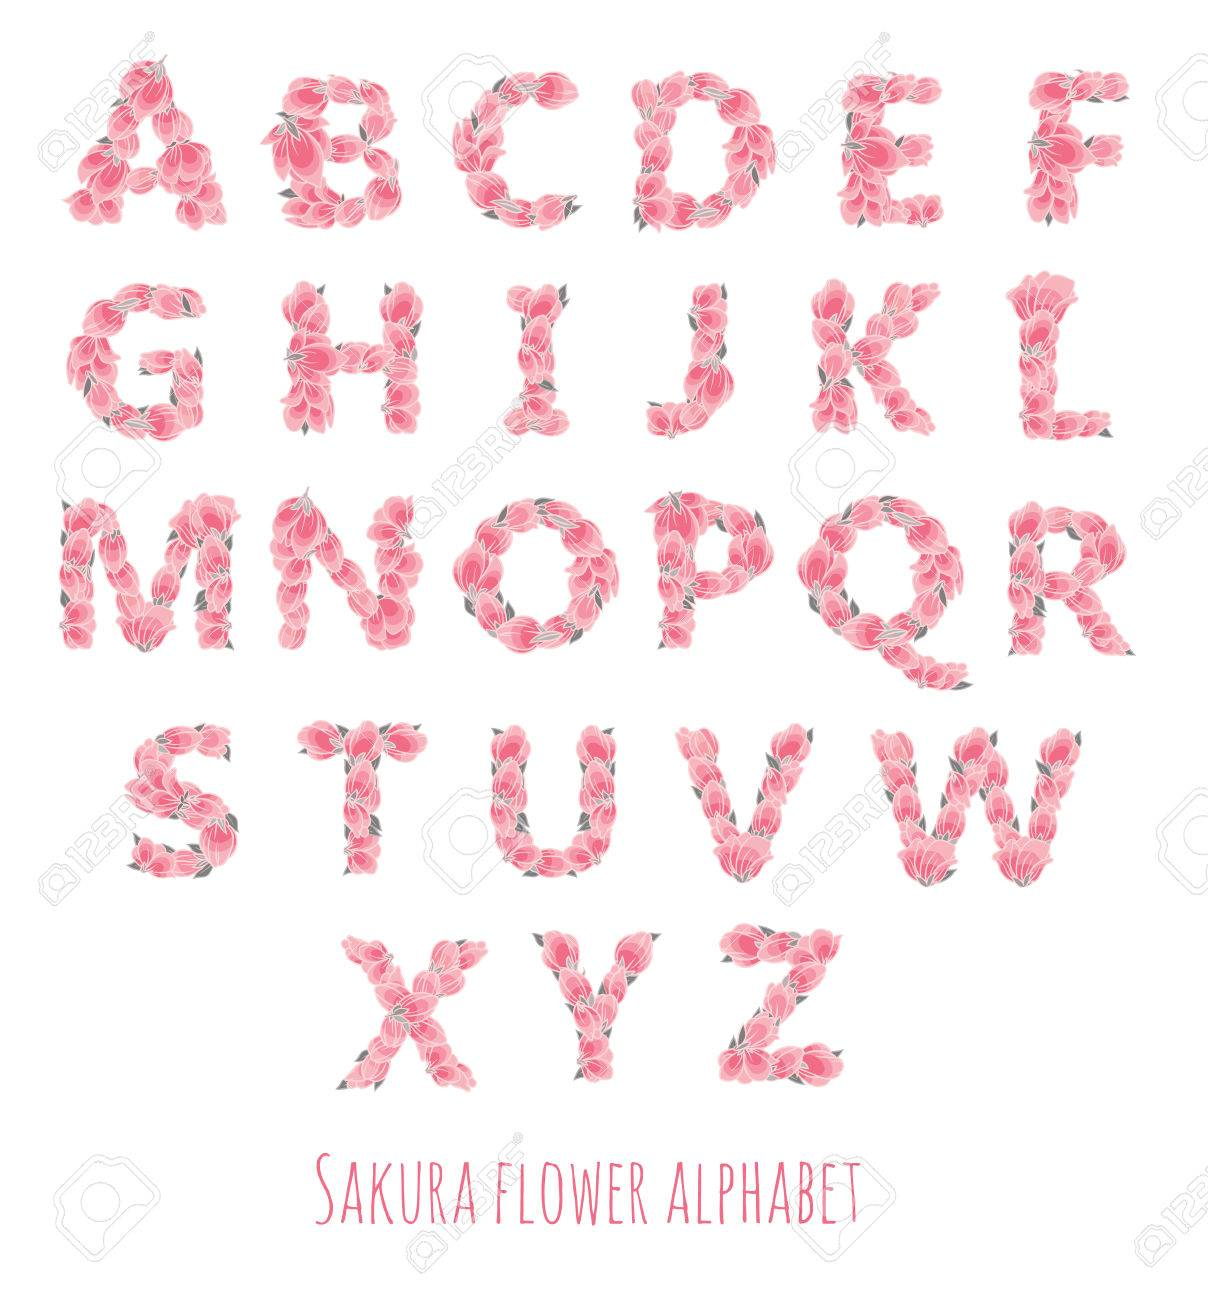 Vector Colorful Flower Font - Font Made With Sakura Flowers And ...